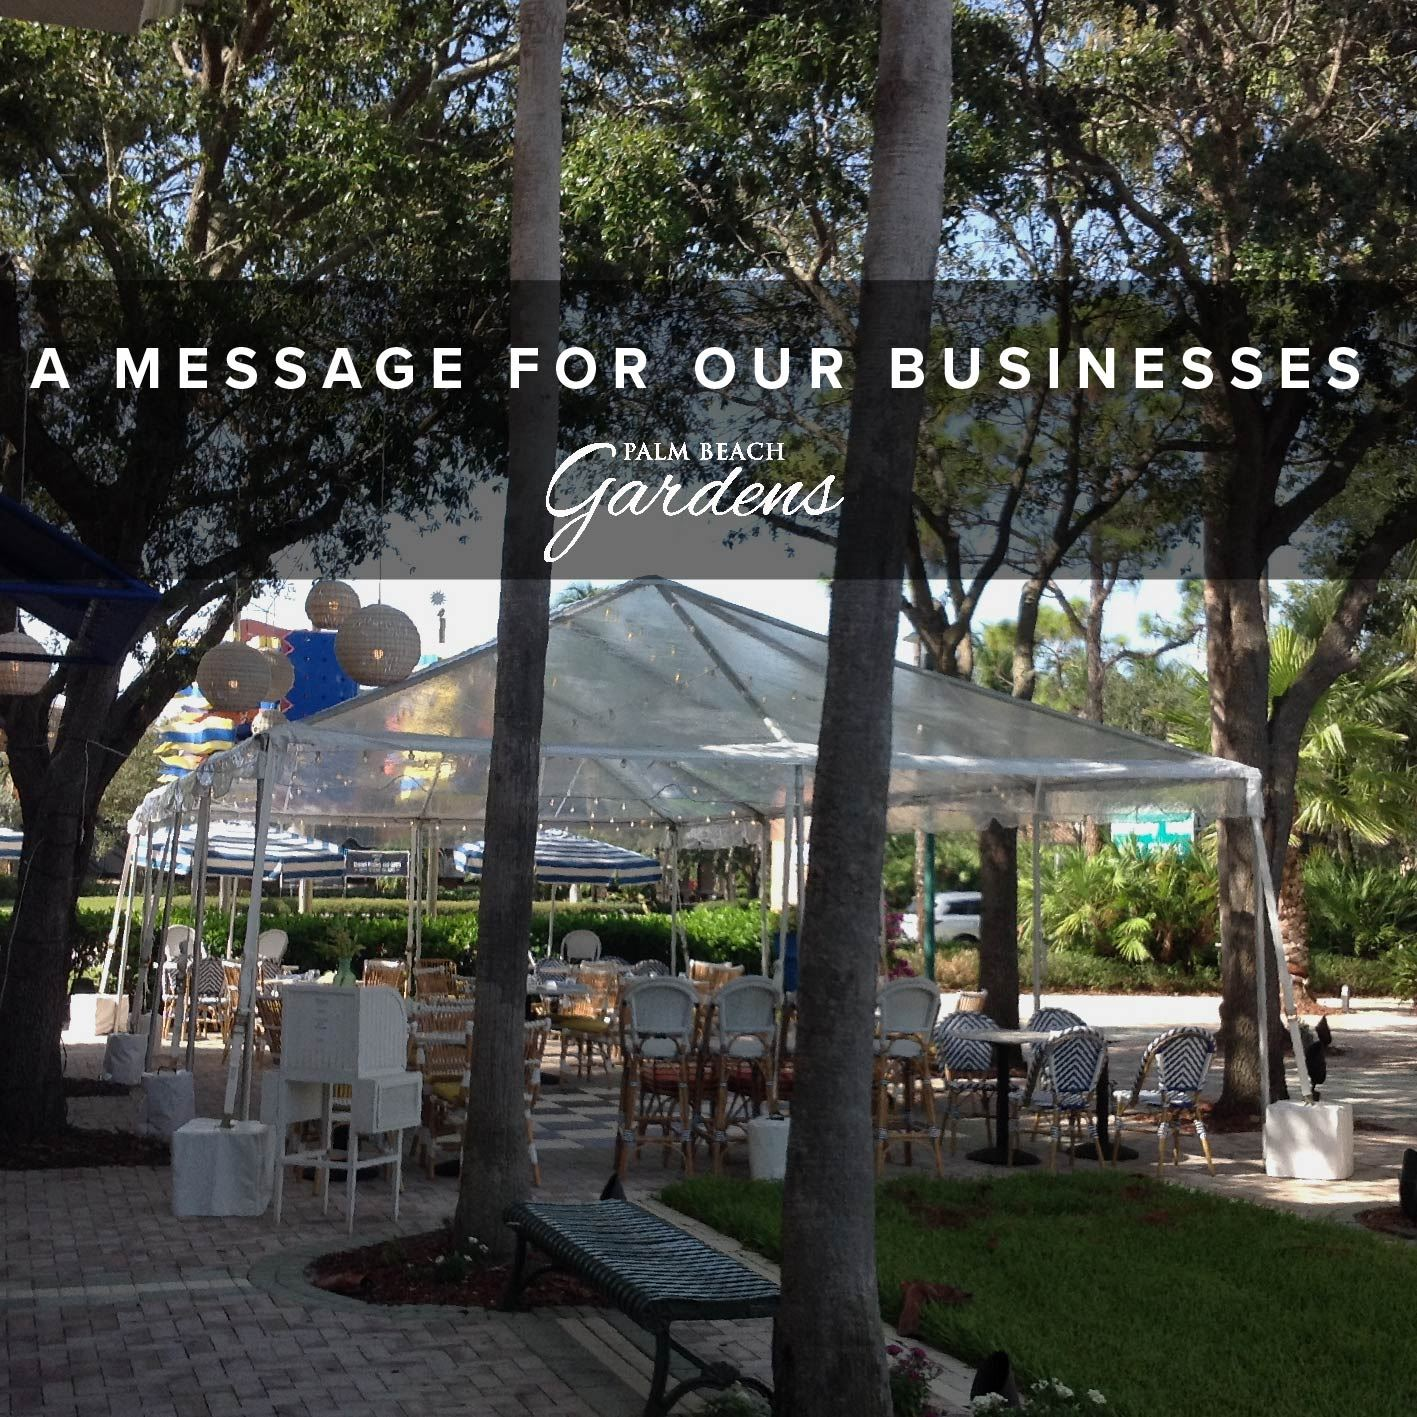 A message for our businesses on outdoor are use.